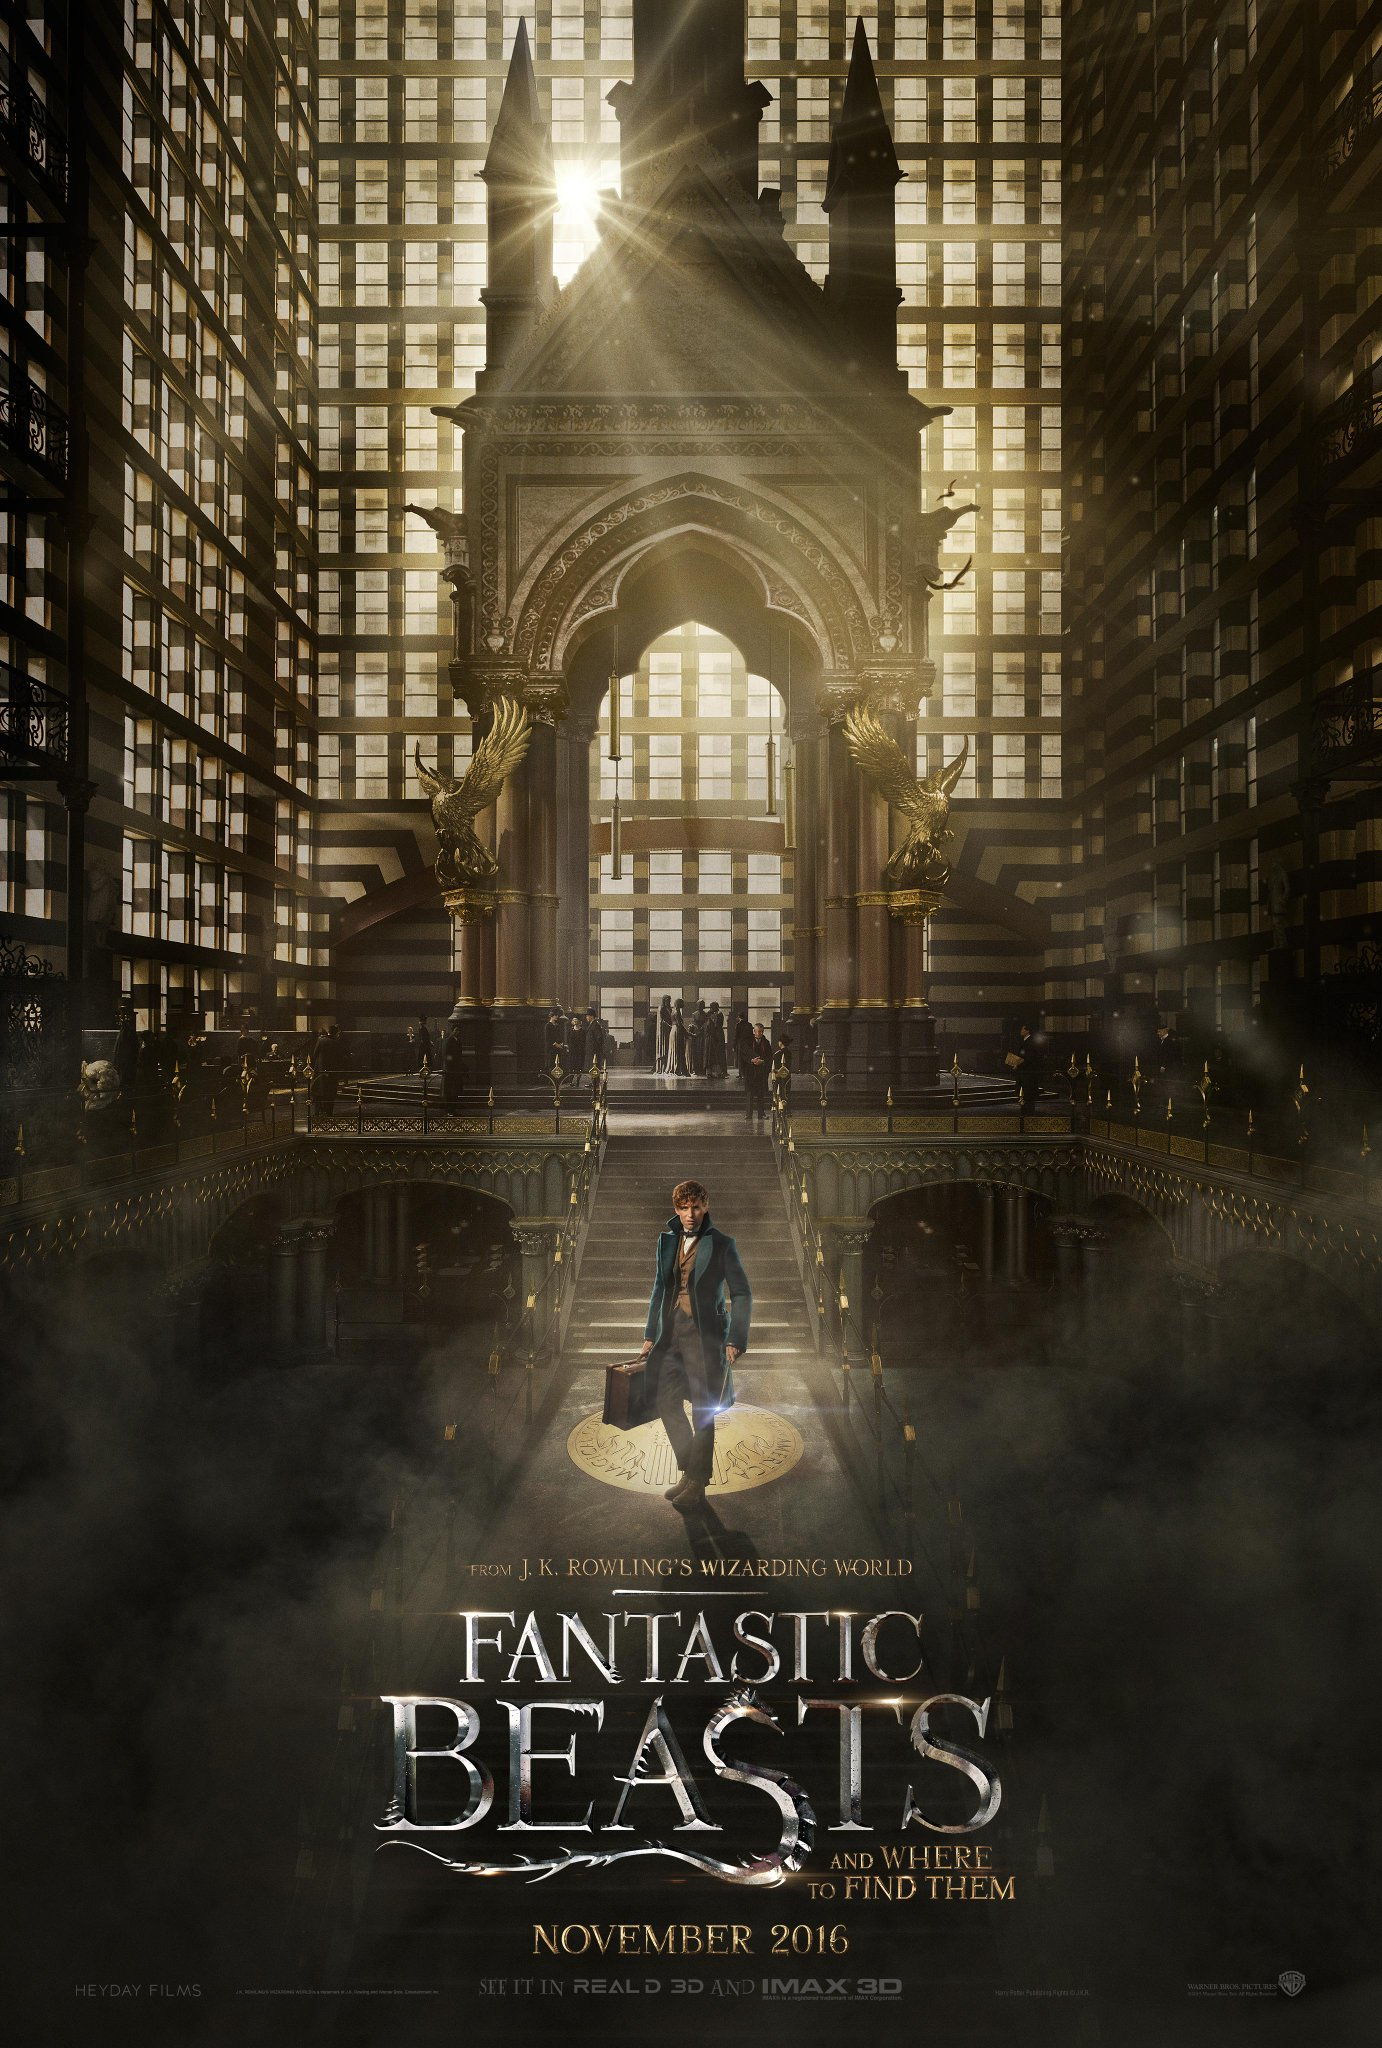 Fantastic Beasts and Where to Find Them Trailer Featuring Eddie Redmayne 1